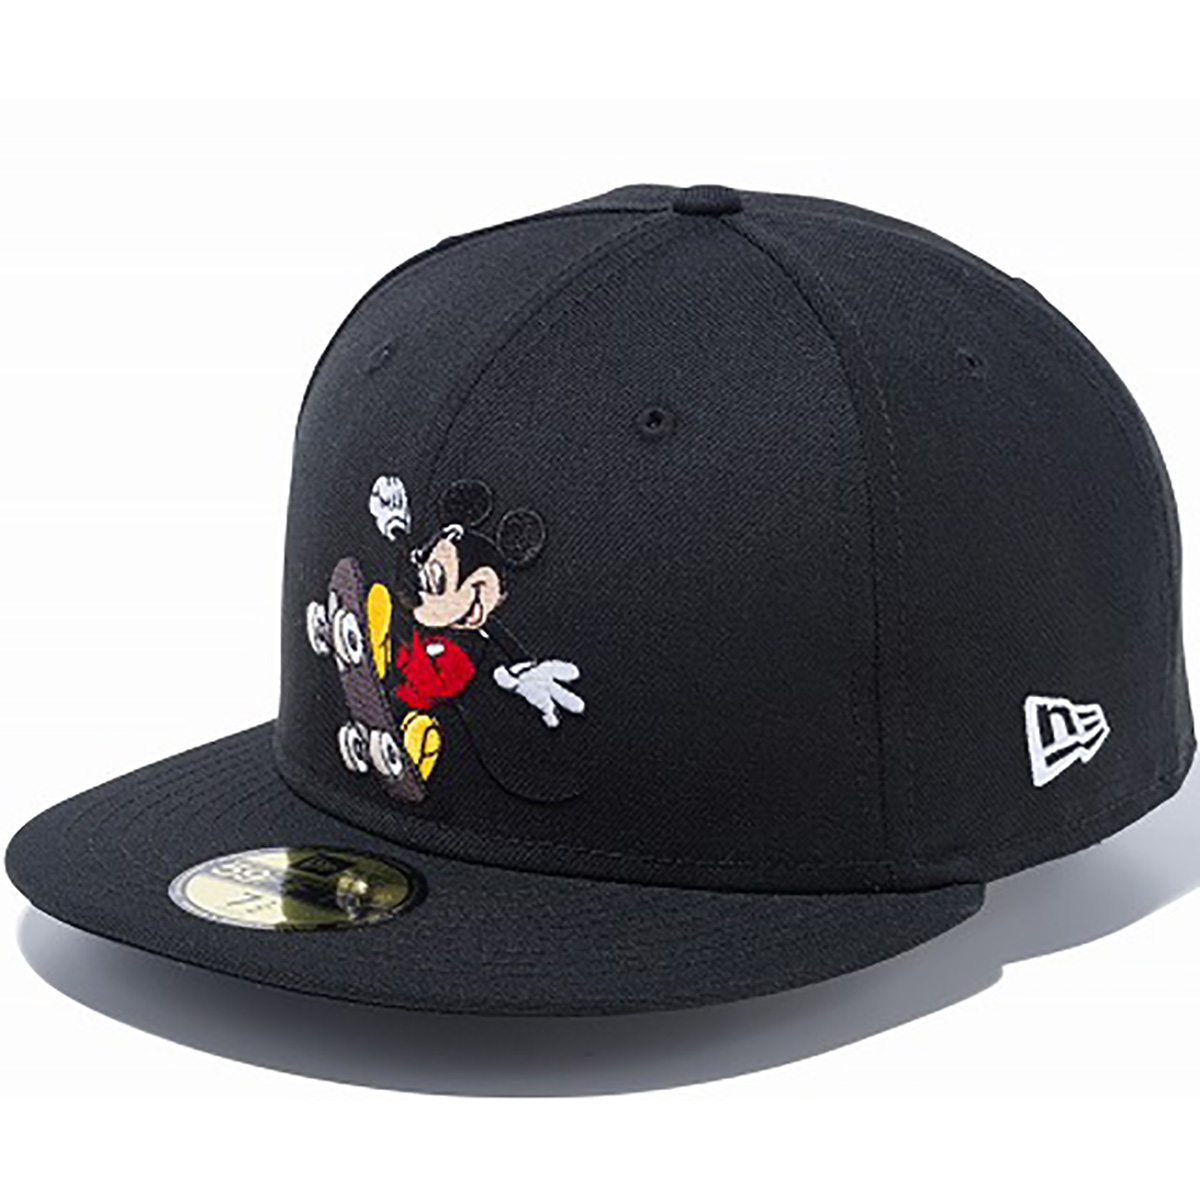 5950 DISNEY MICKEY SKATEBOARD キャップ